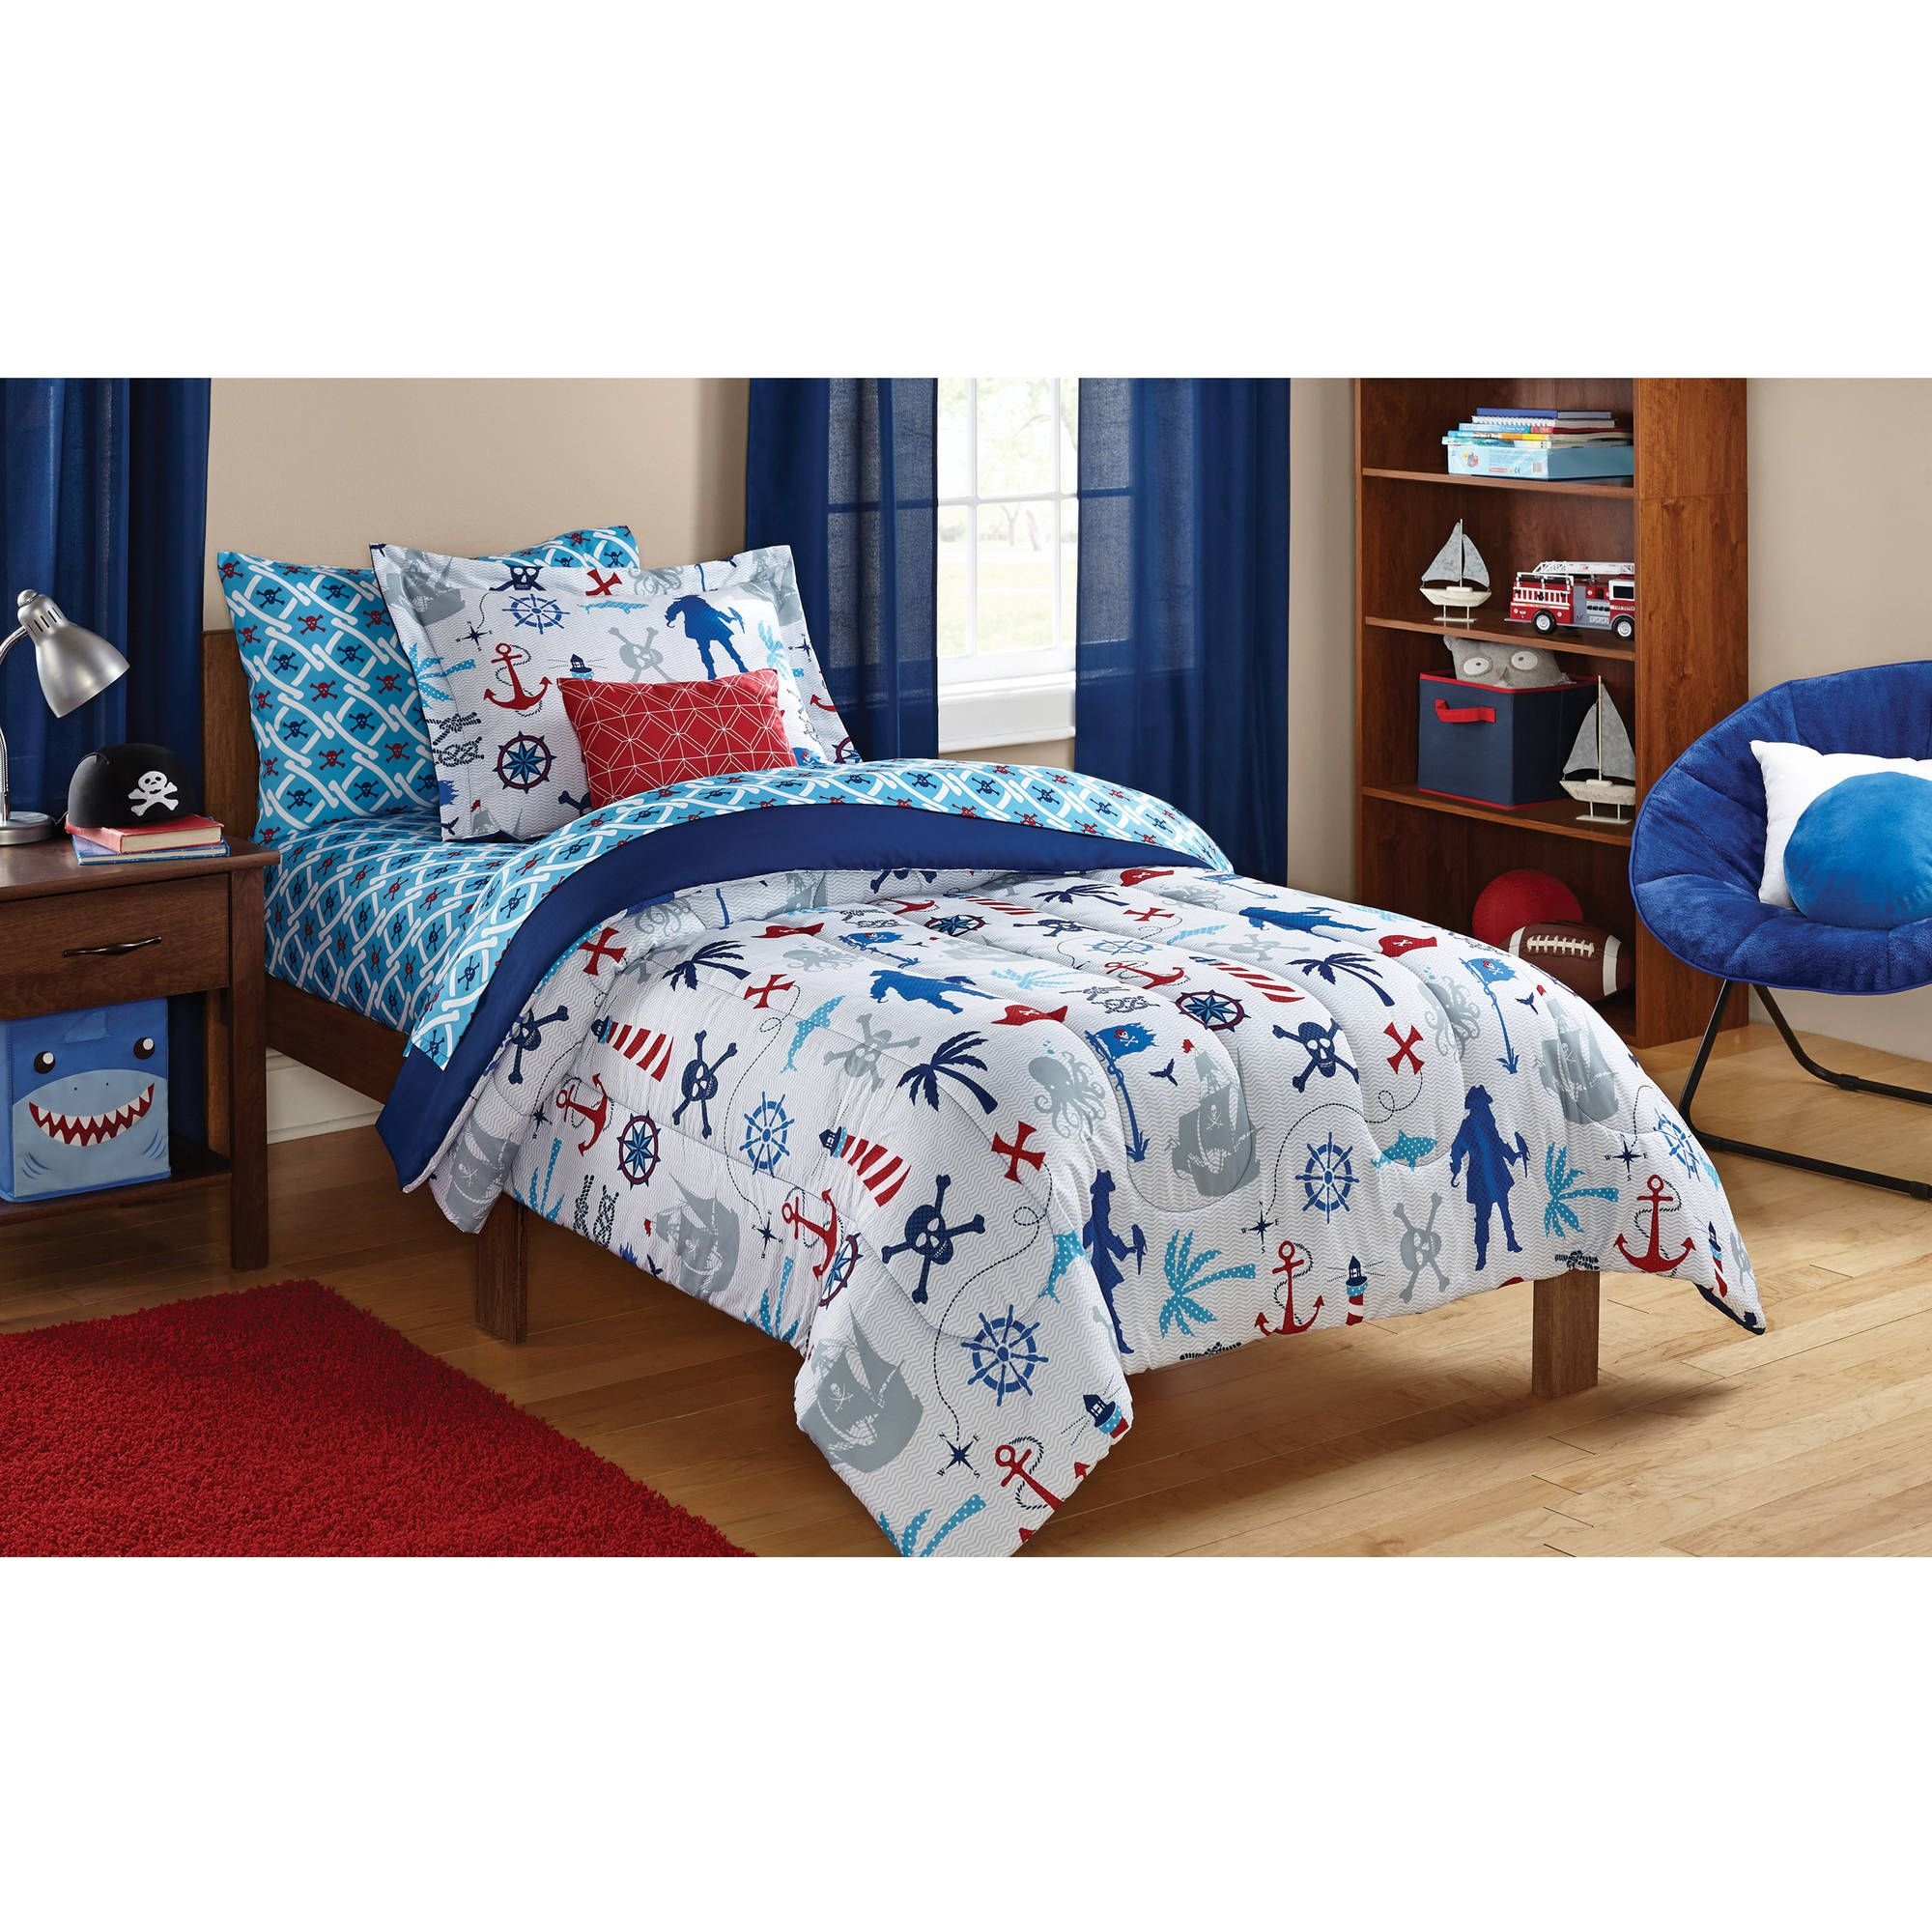 bed australia californiamforter in appealingedroom gallery king n kids inag walmart bag loftedsunk comforter a for red sets of size